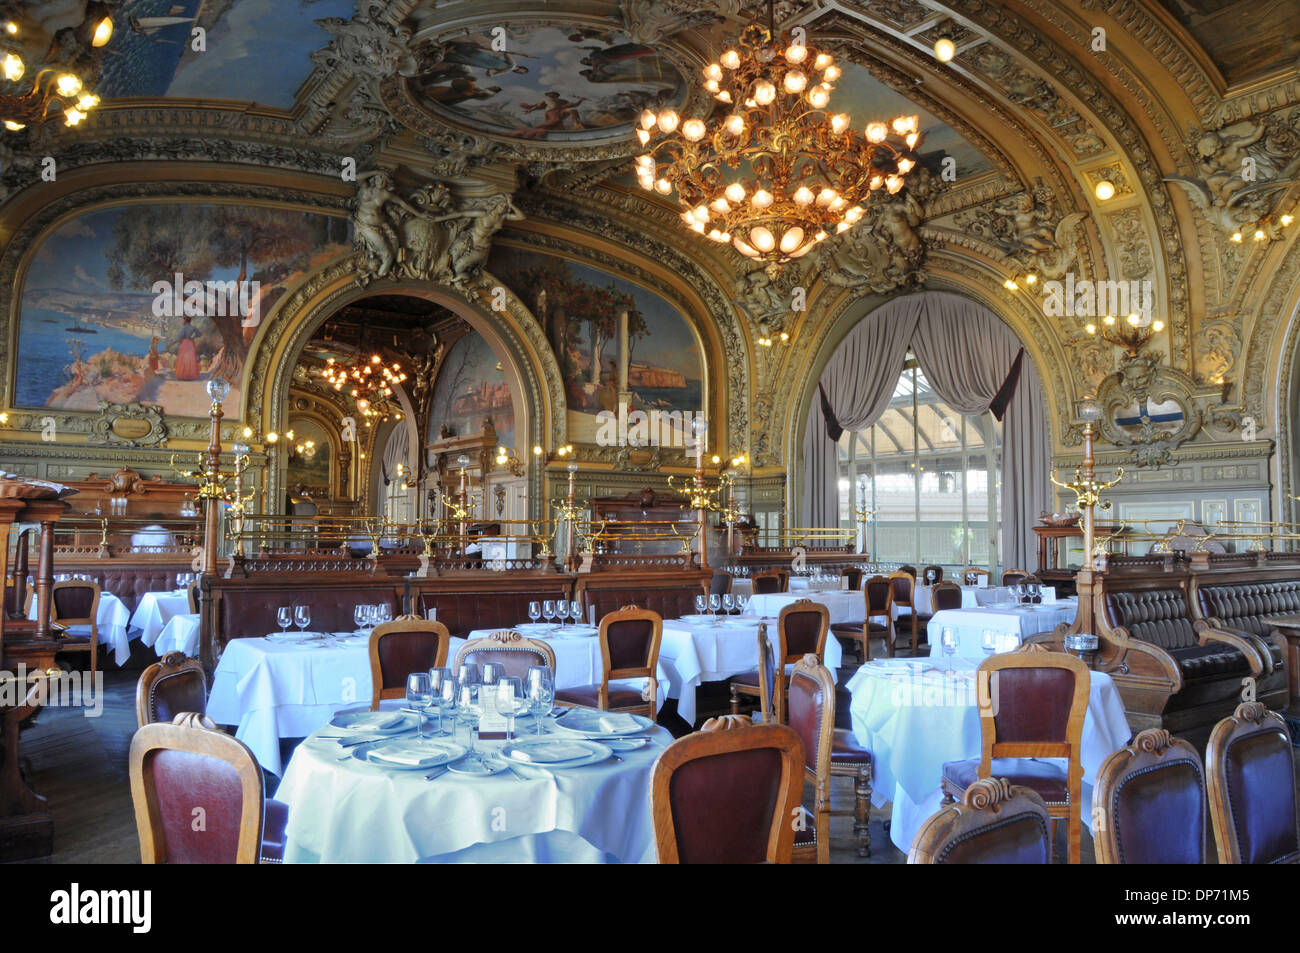 Le train bleu restaurant gare de lyon paris france stock for Stock cuisine lyon